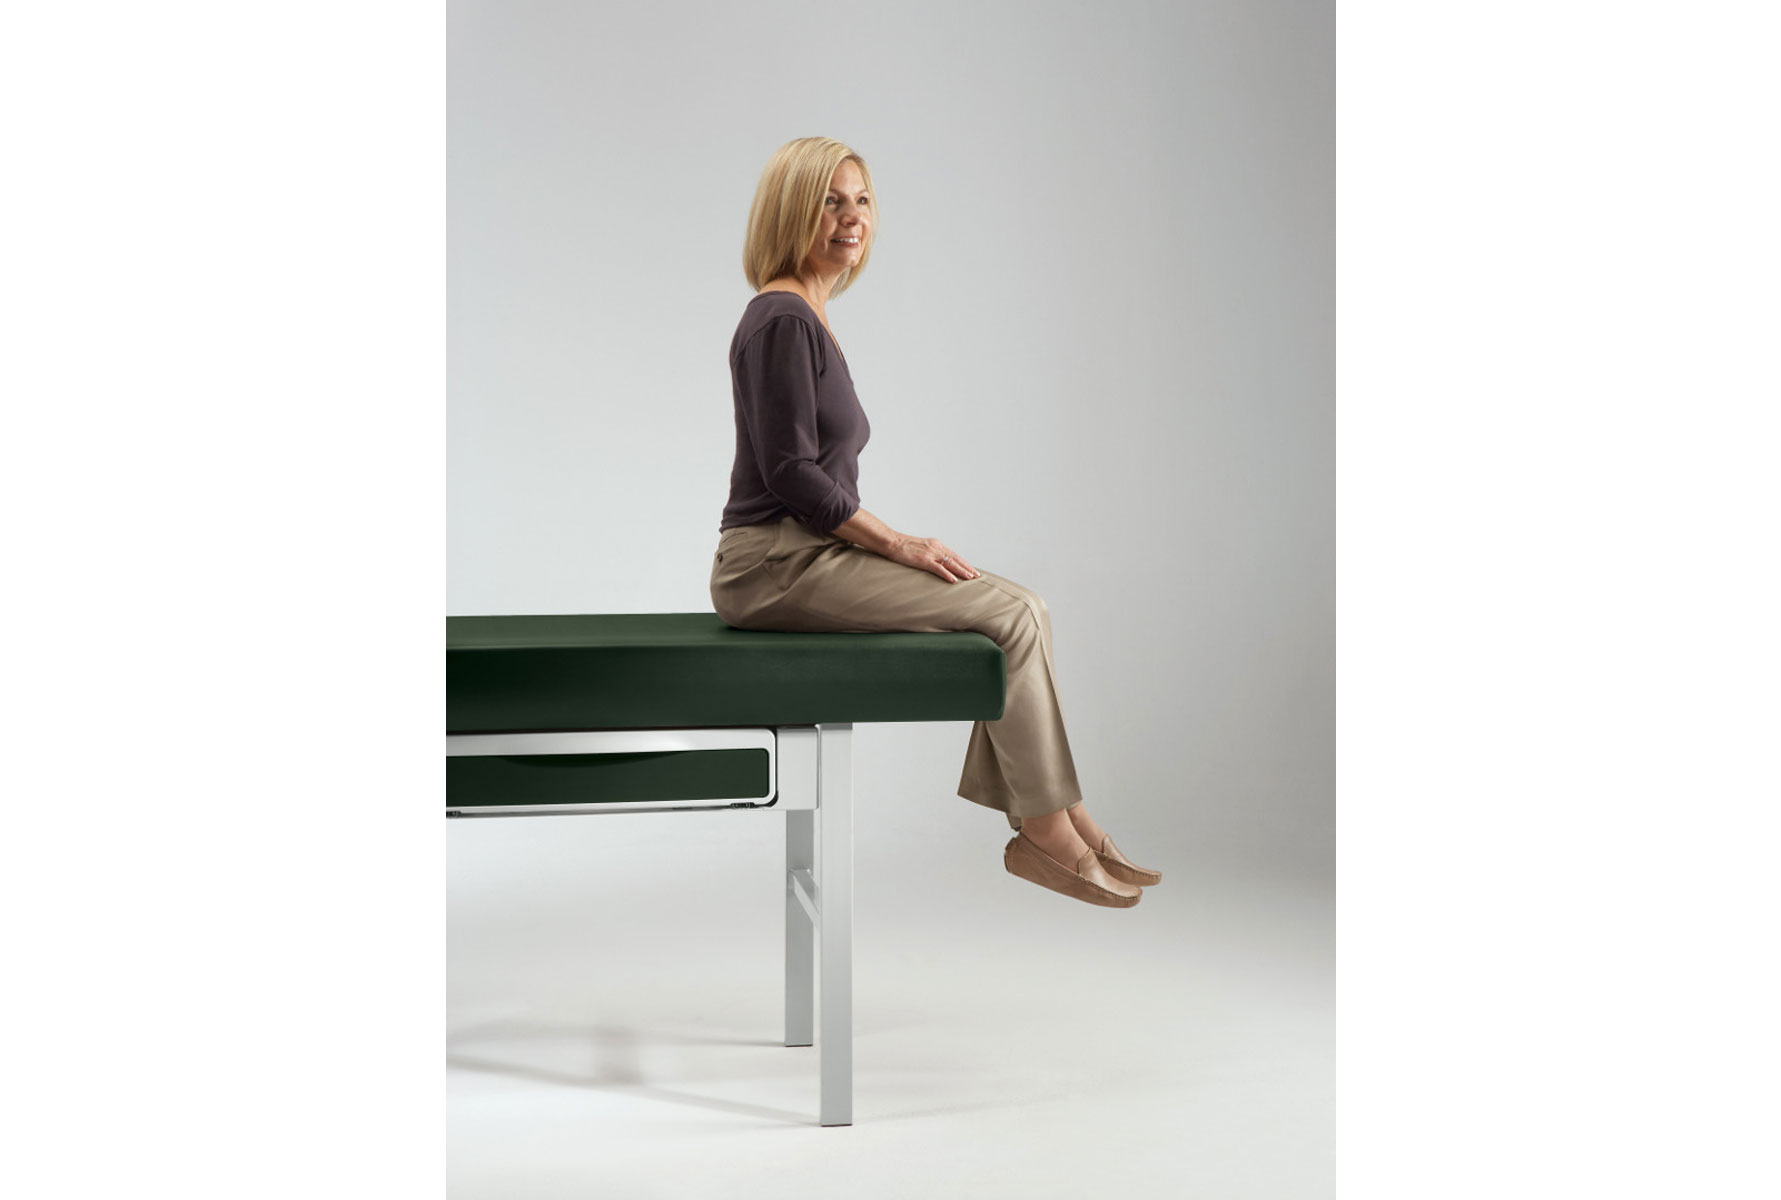 Ritter-203-Treatment-Table